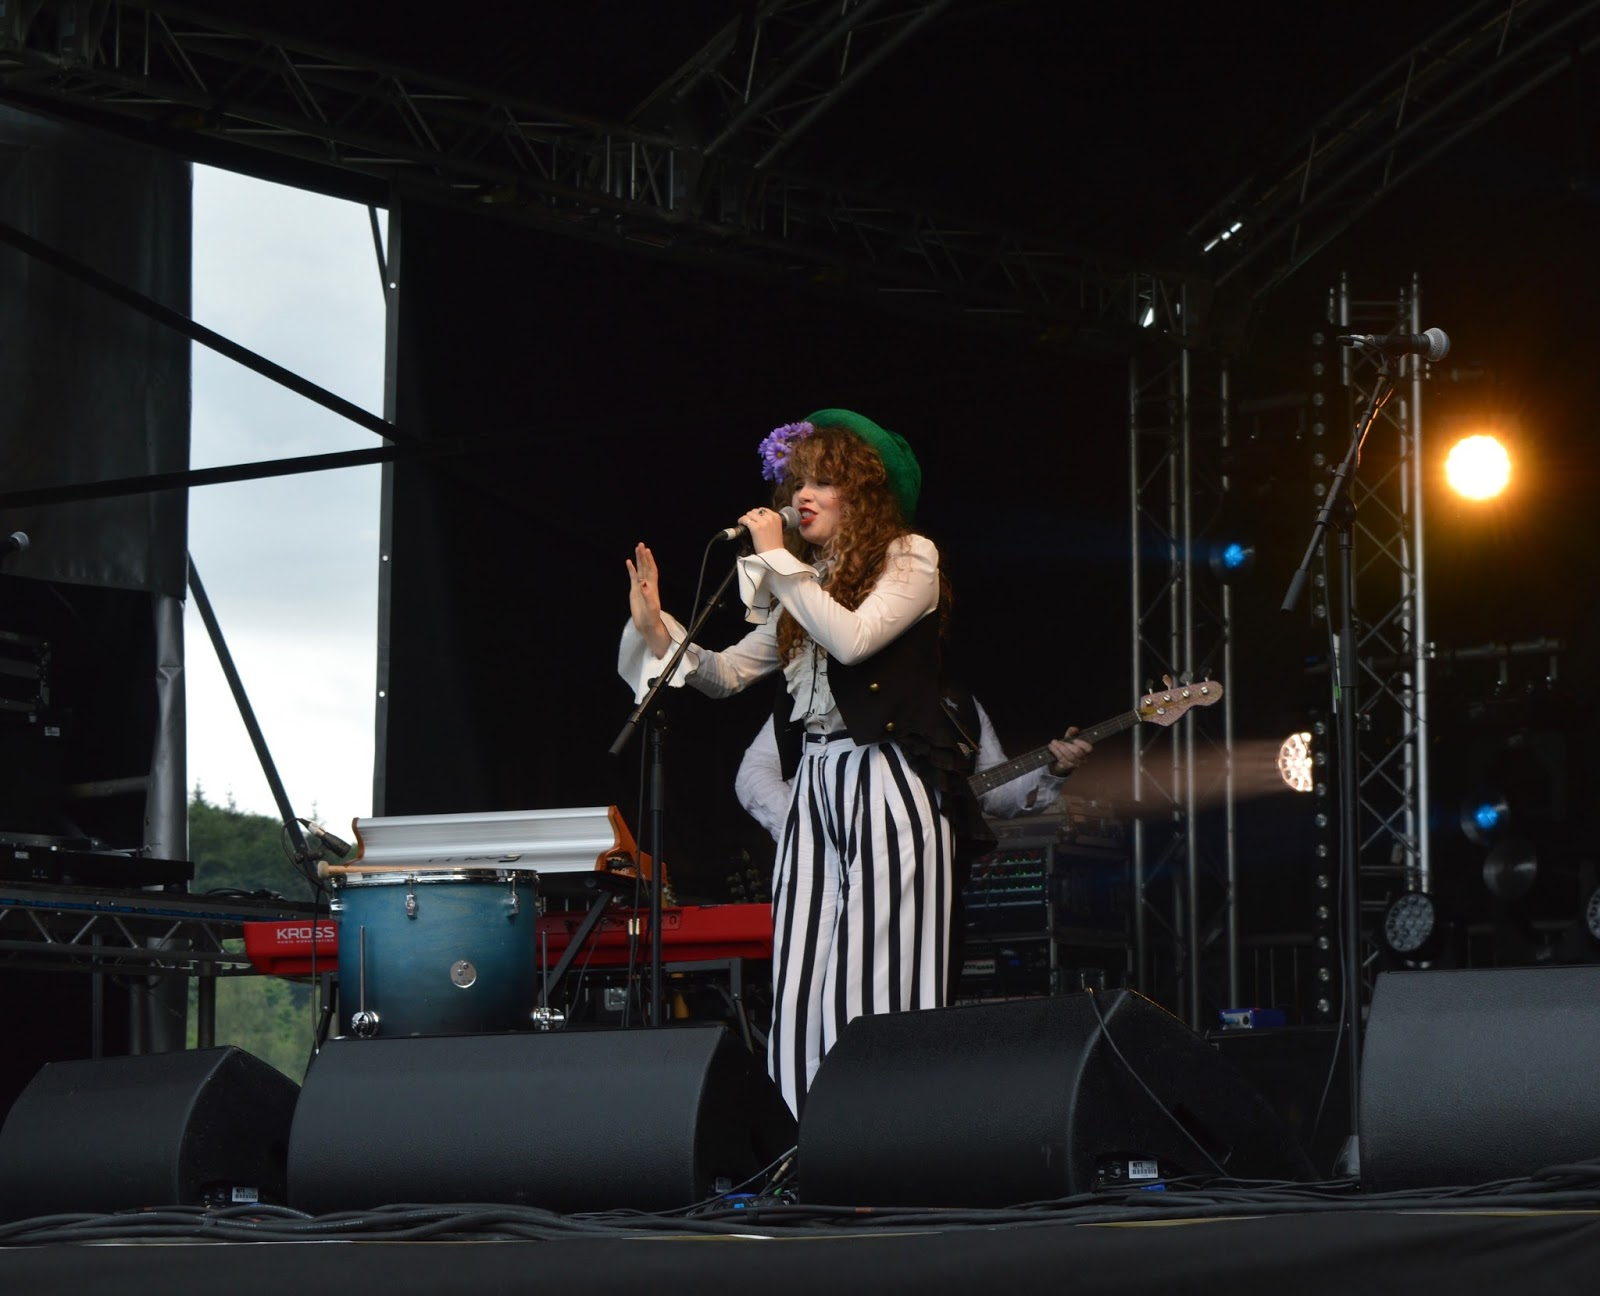 Corbridge Festival 2016 - A Review - Cortney Dixon